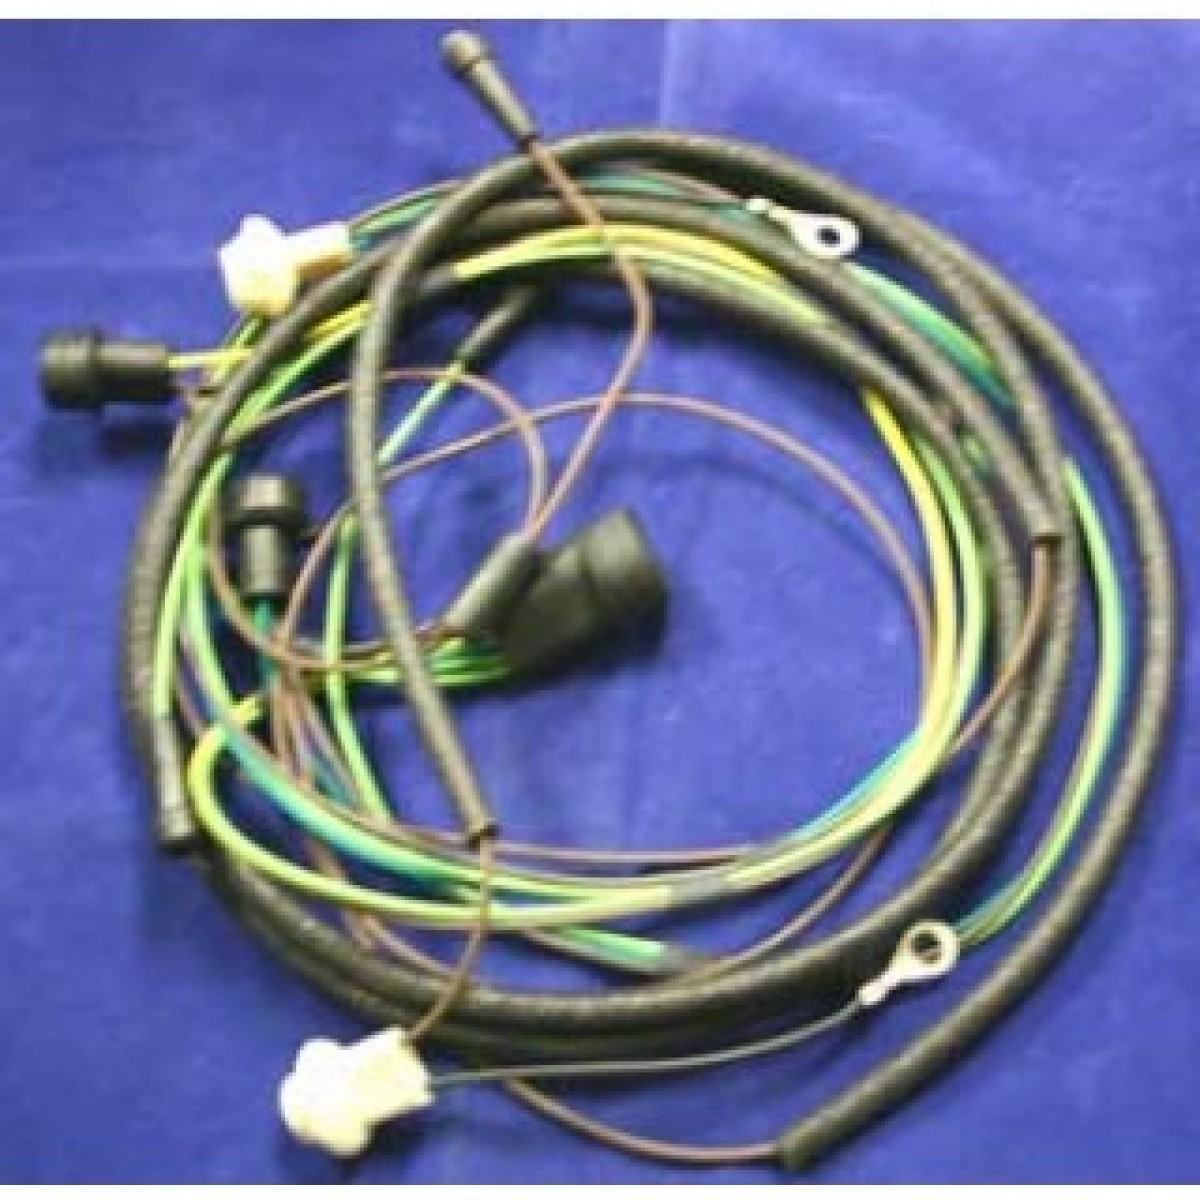 1972 C10 Wiring Harness Diagram Will Be A Thing 1973 1967 Rear Body Light Stepside Tail Rh Code510 Com Replacement